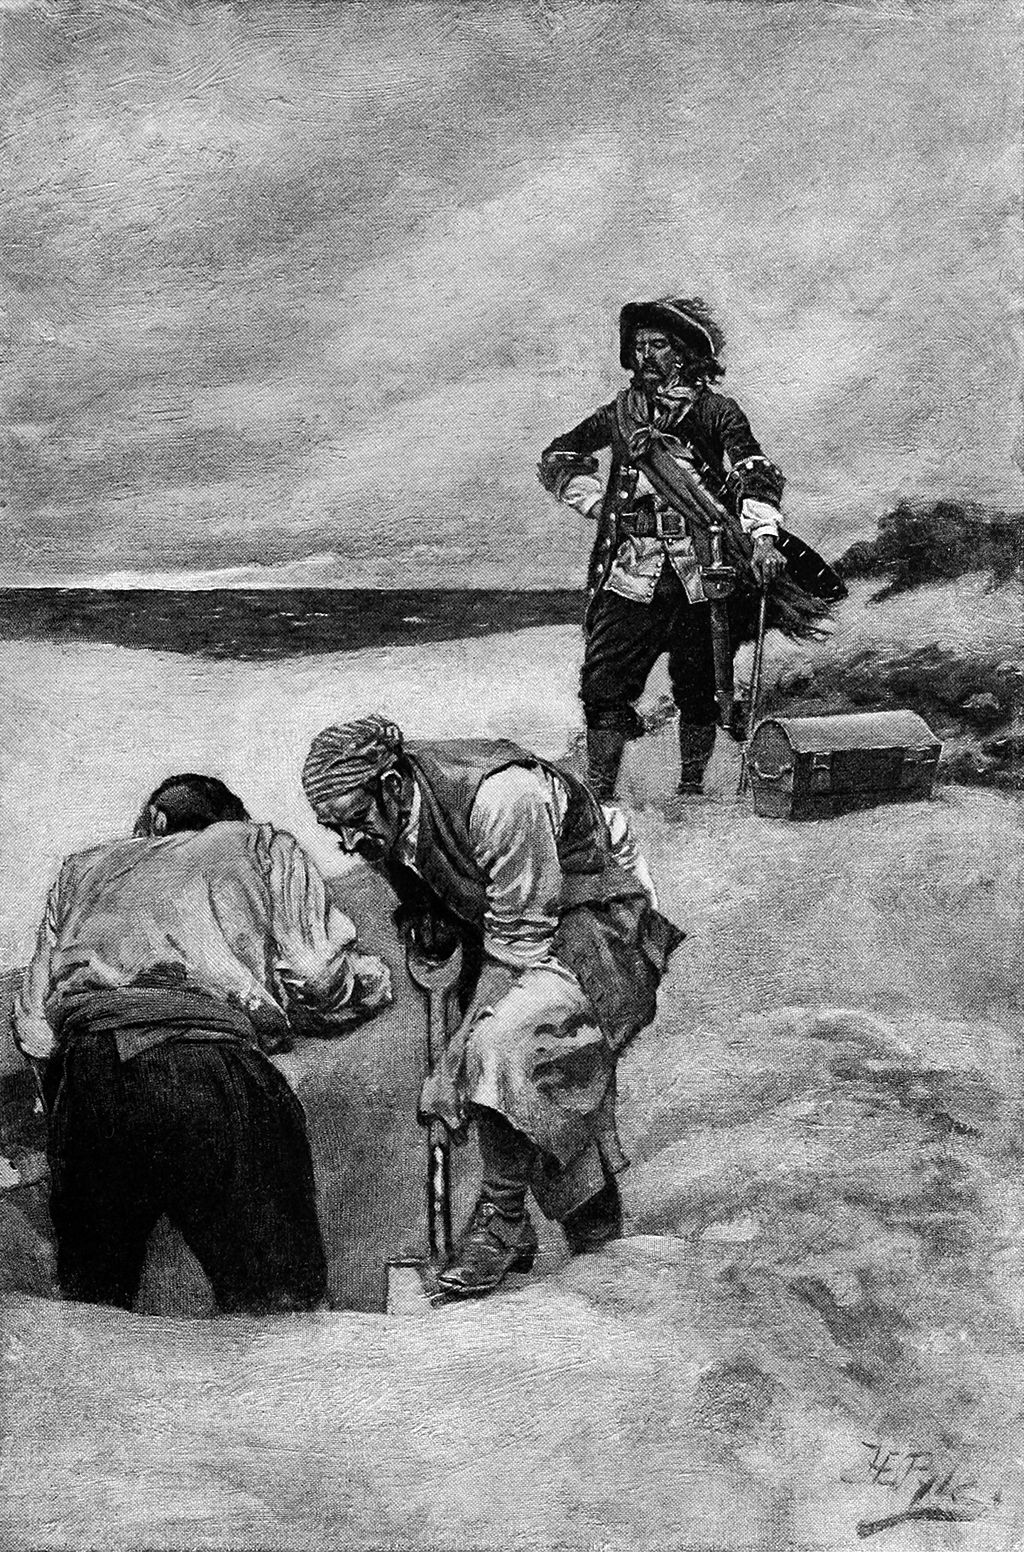 In Search of Captain Kidd's Lost Treasure